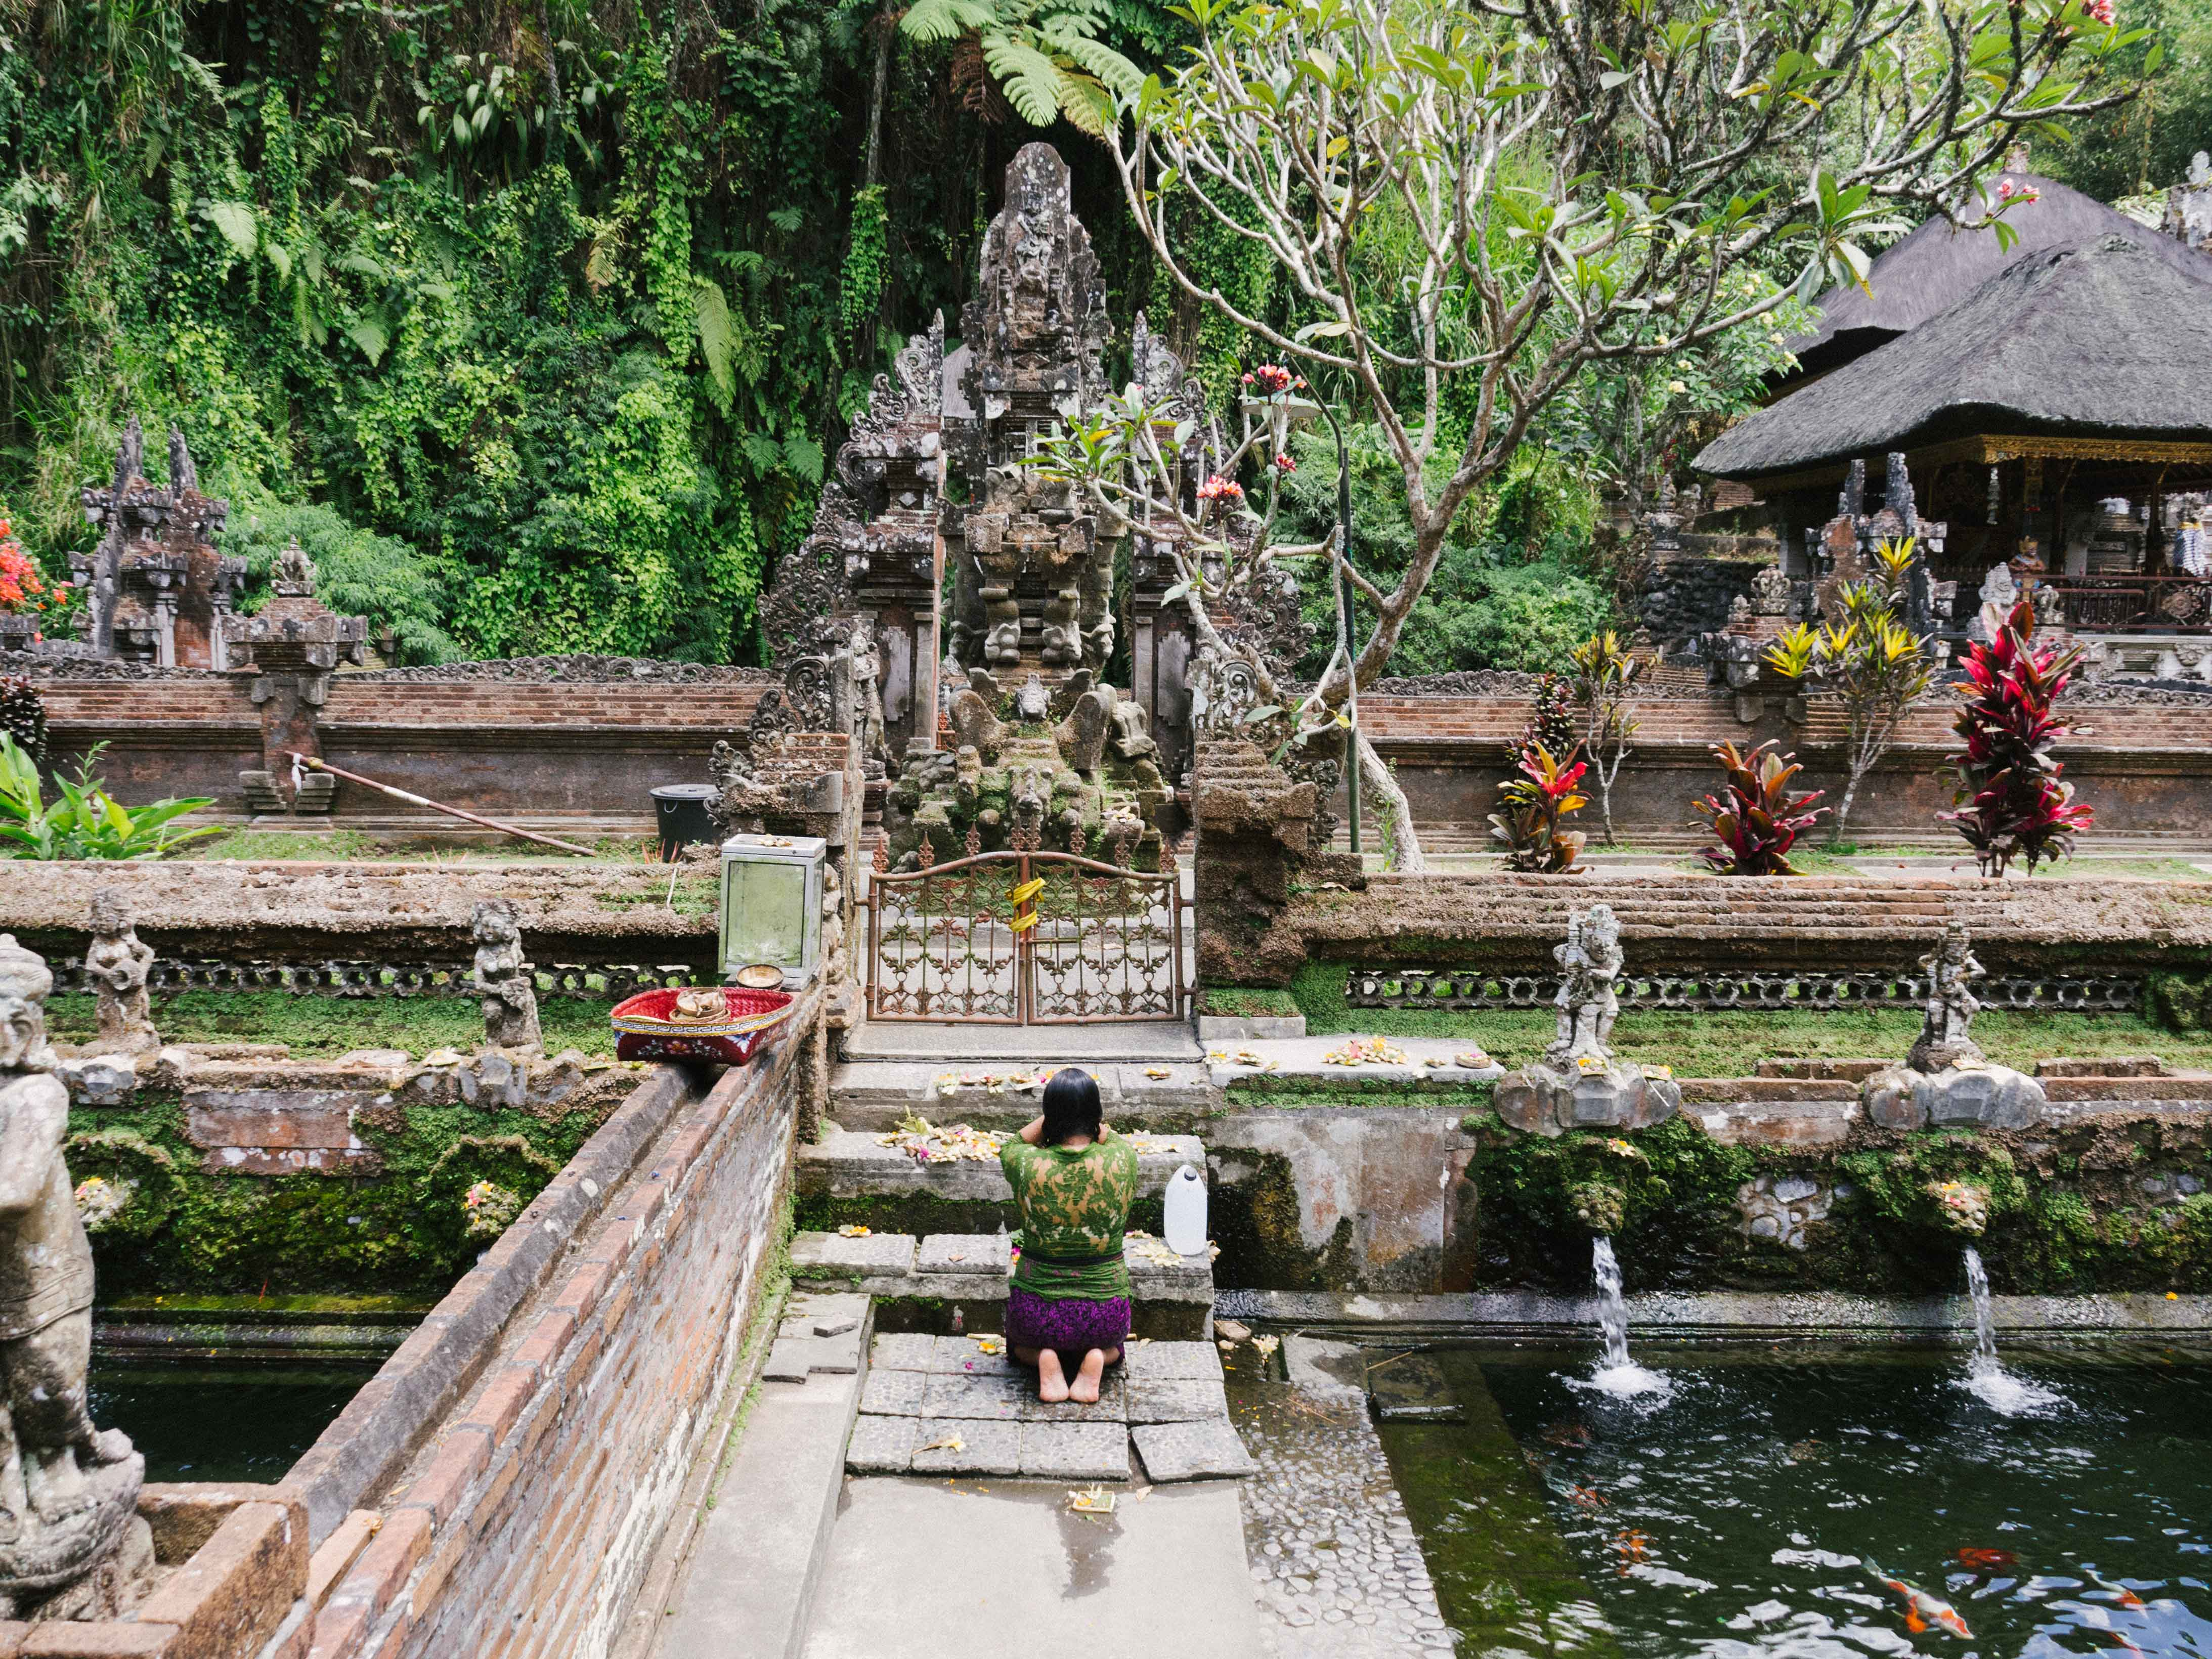 Image for blog article: Ubud